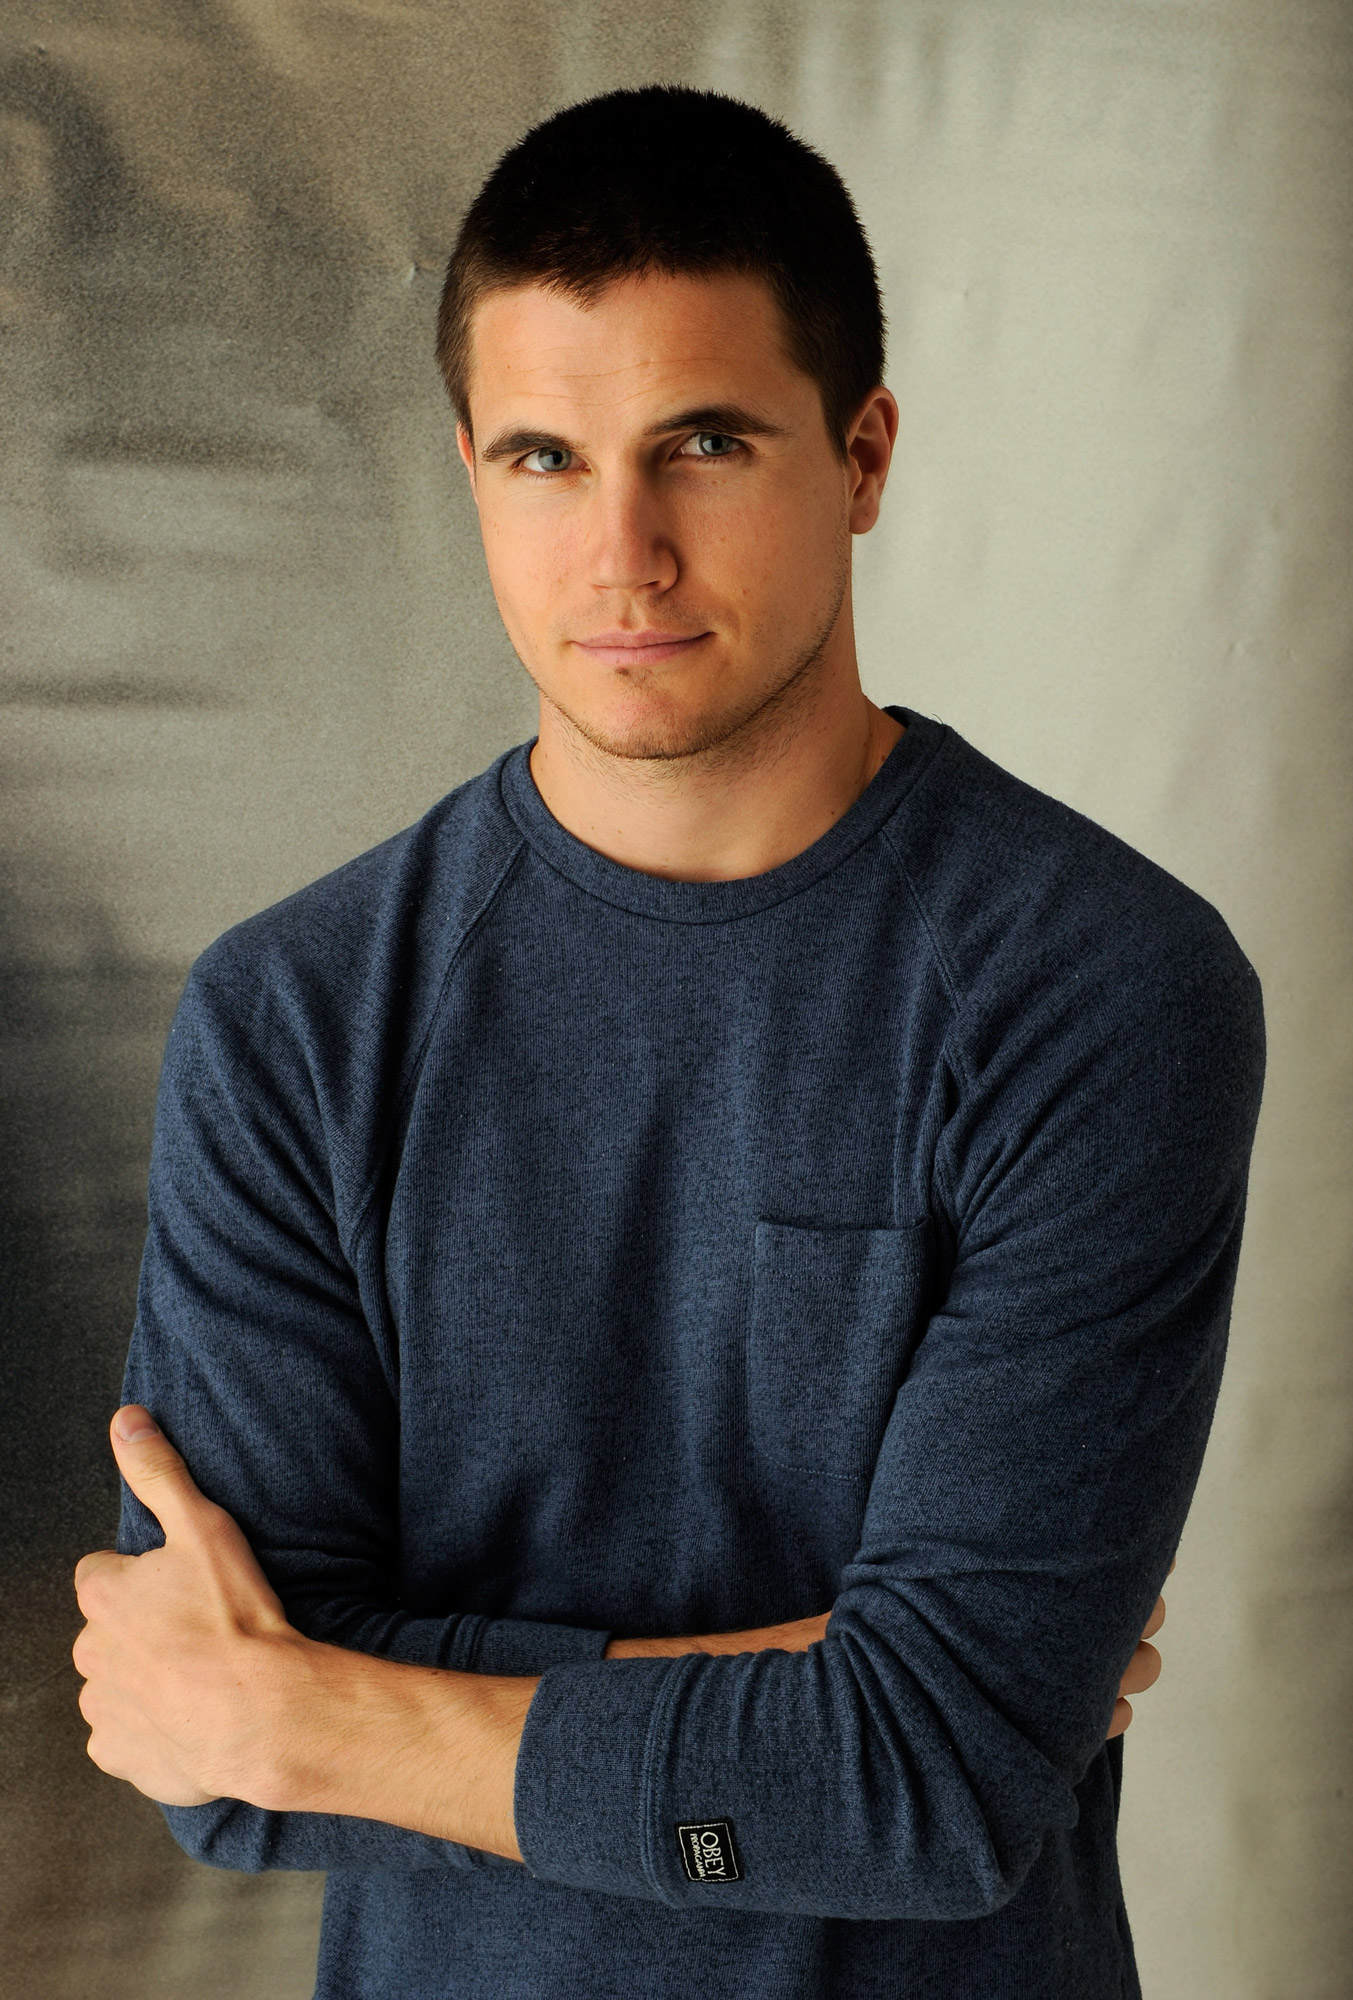 Robbie Amell | POPSUGAR Celebrity